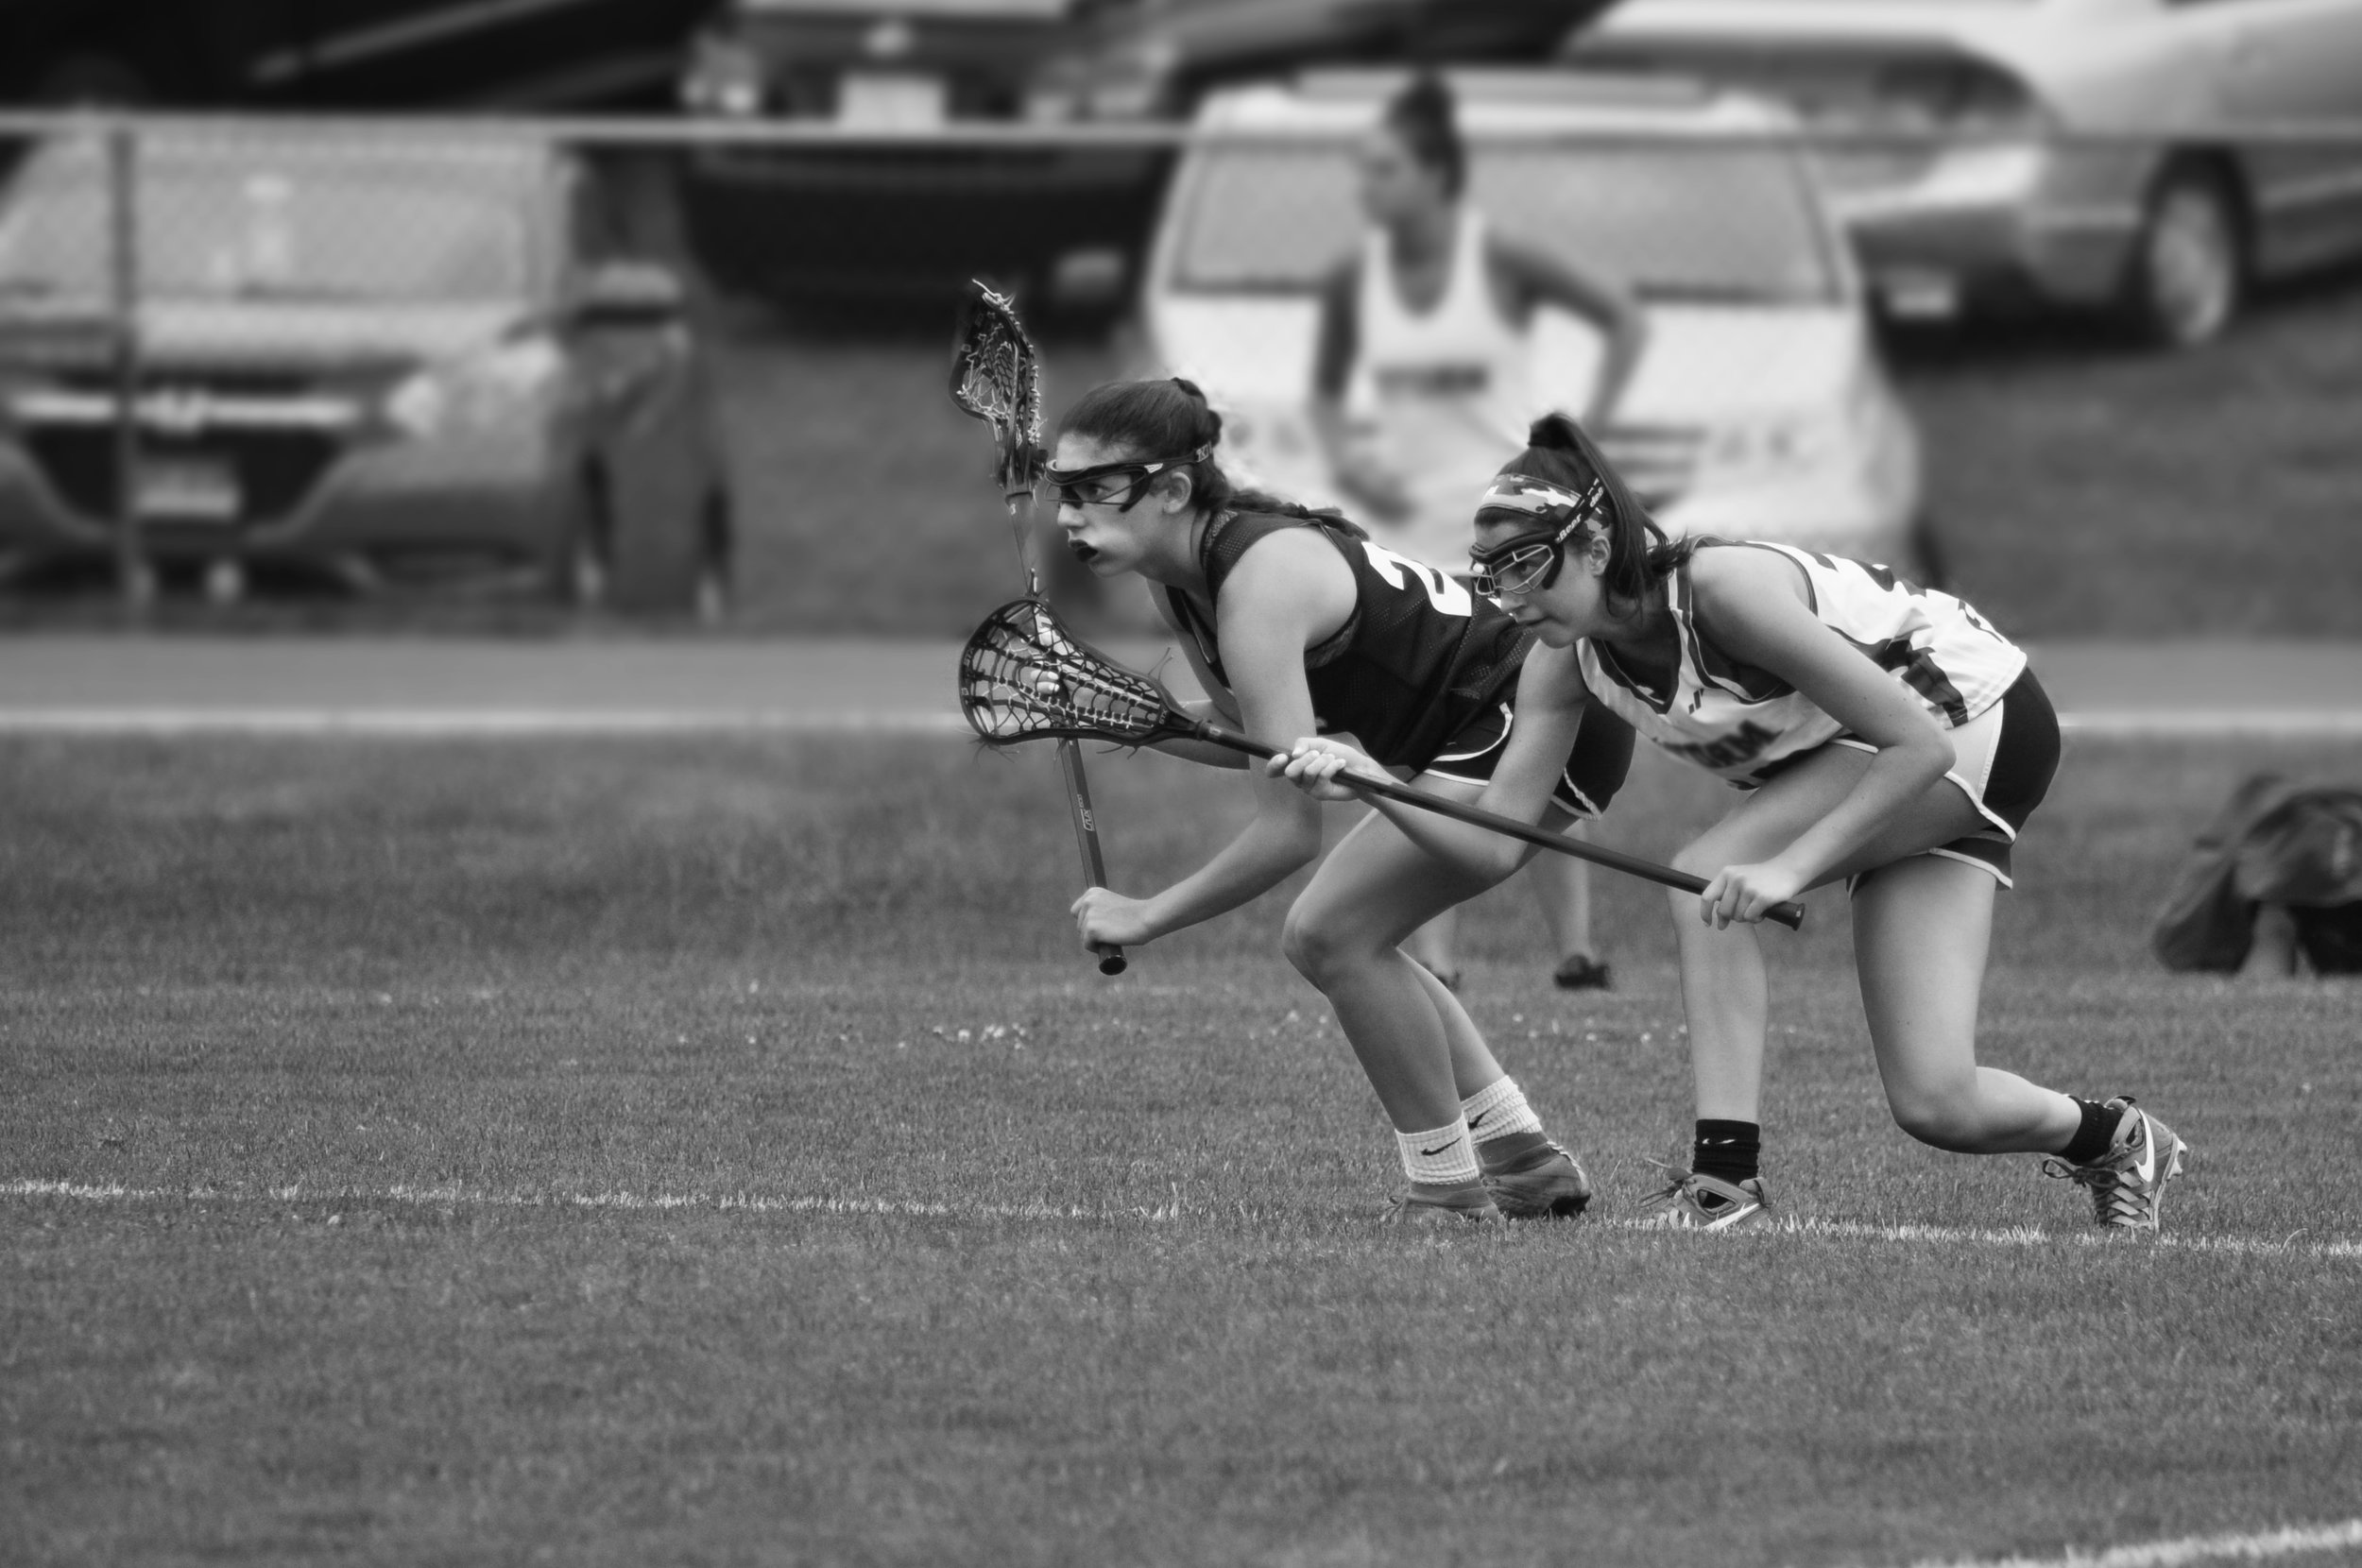 our mission - Our mission is to provide age-appropriate programming that guides young female athletes into strong female leaders. MethodLax was created to help players grow in all areas of the game. Players can tailor programming to meet their needs and focus on individual player development. As players grow, we offer programs that develop with them.